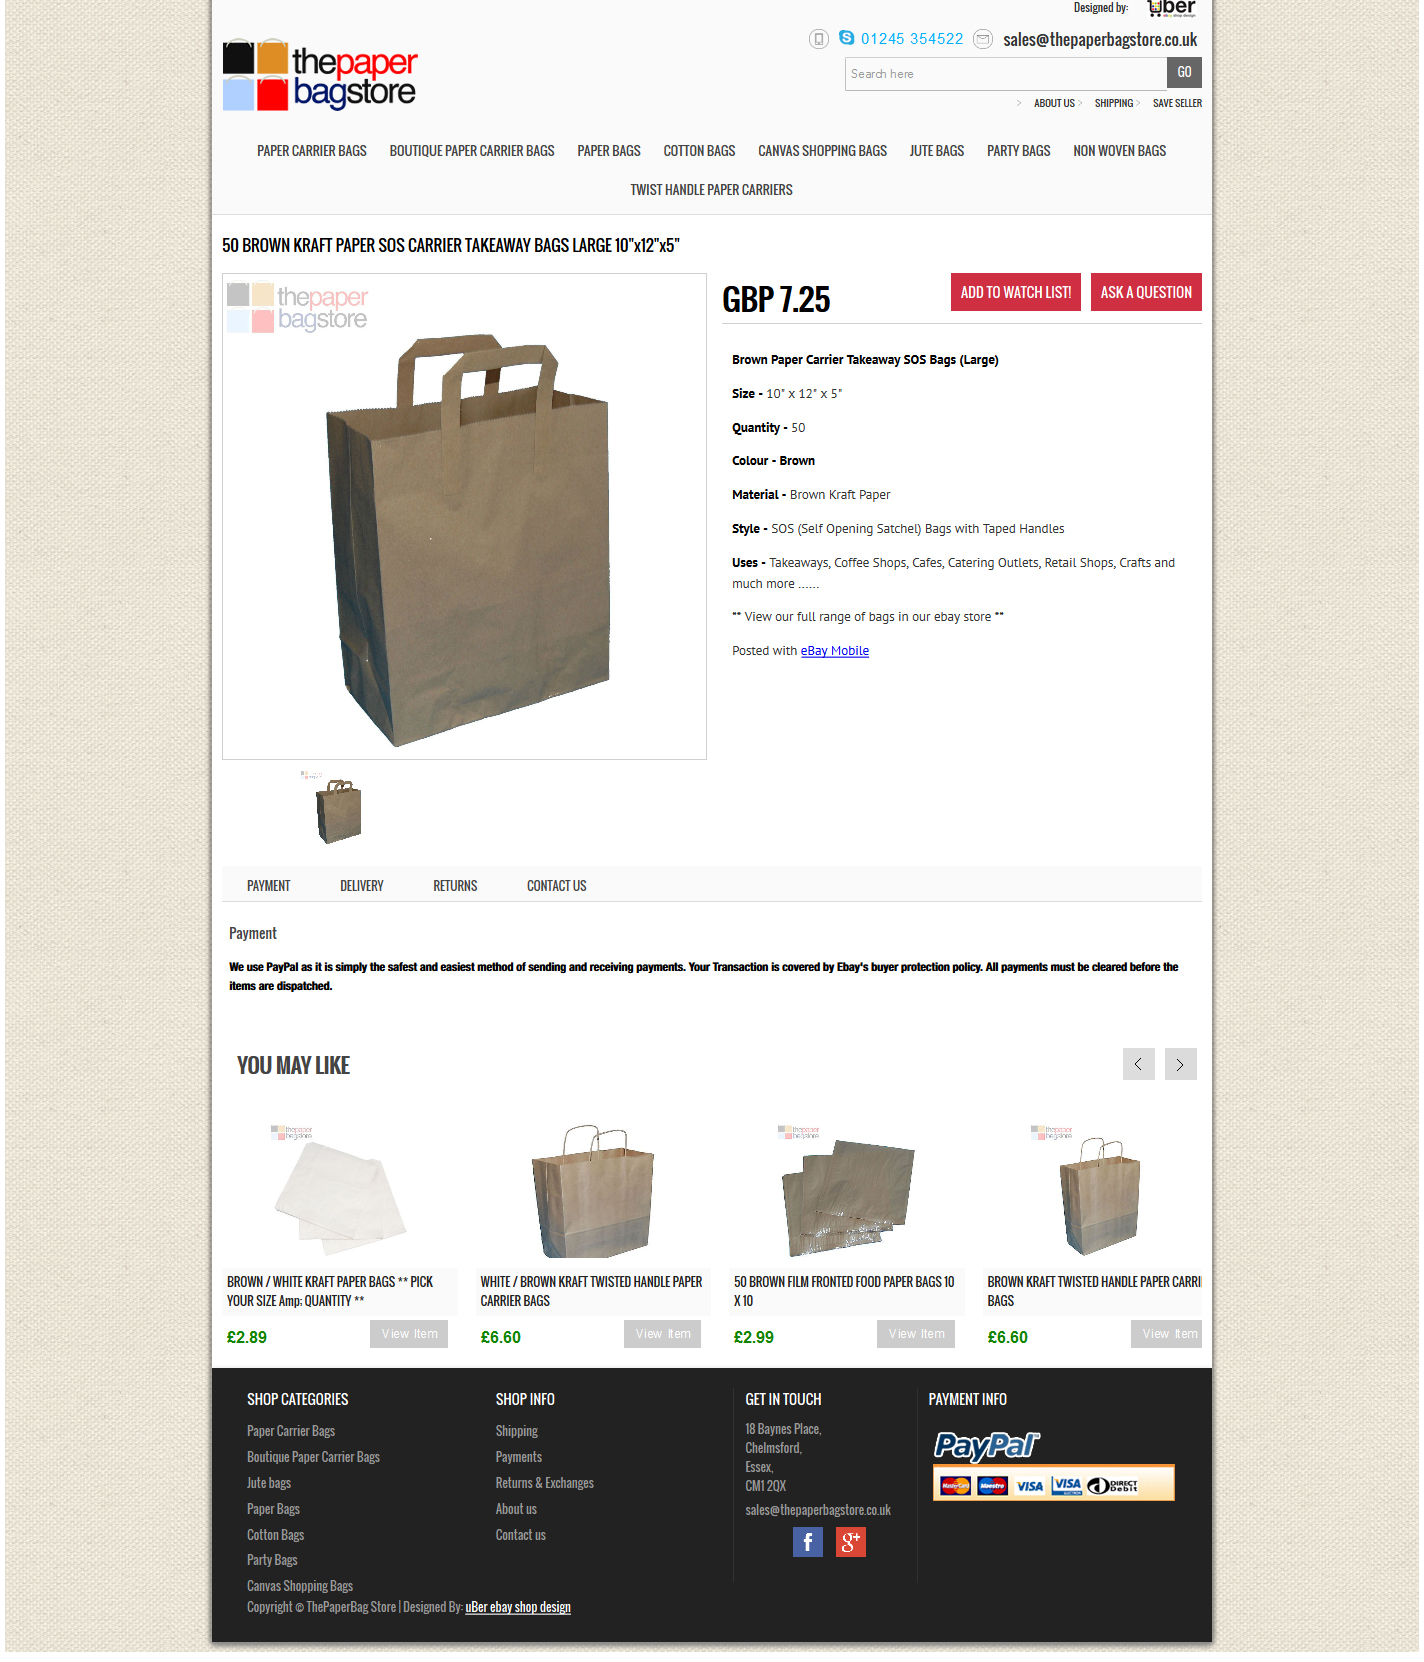 Thepaperbagstore Ltd item page design